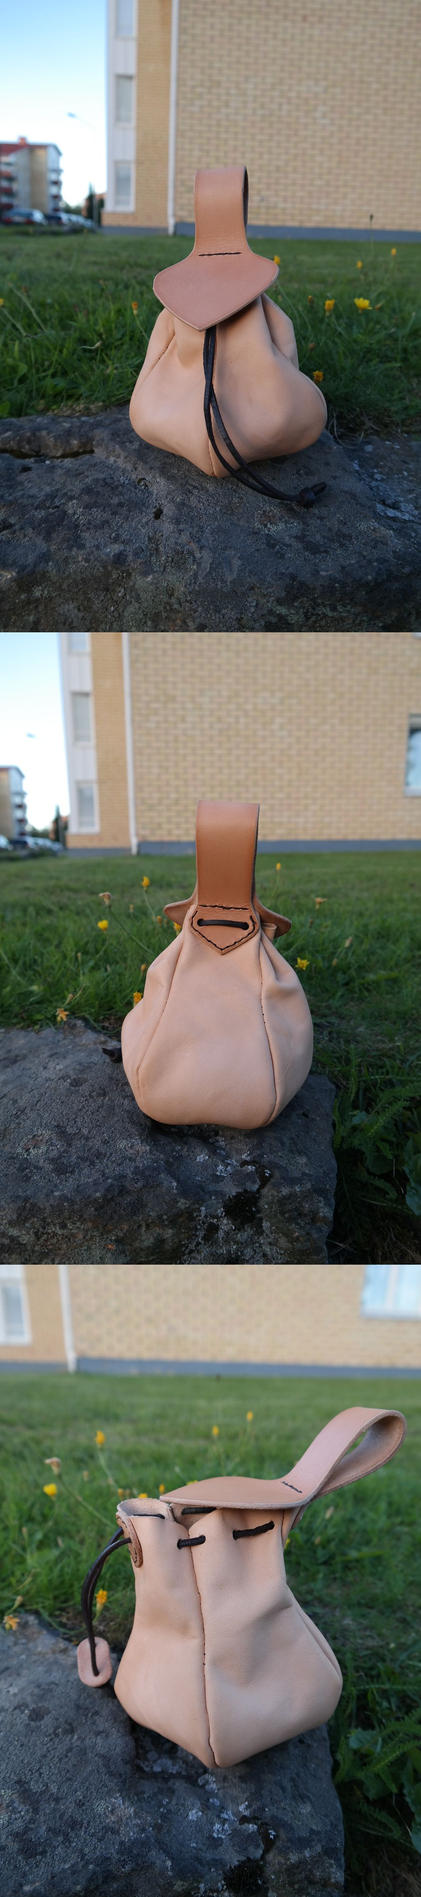 Drawstring pouch with lid version 2 by Durnstaros